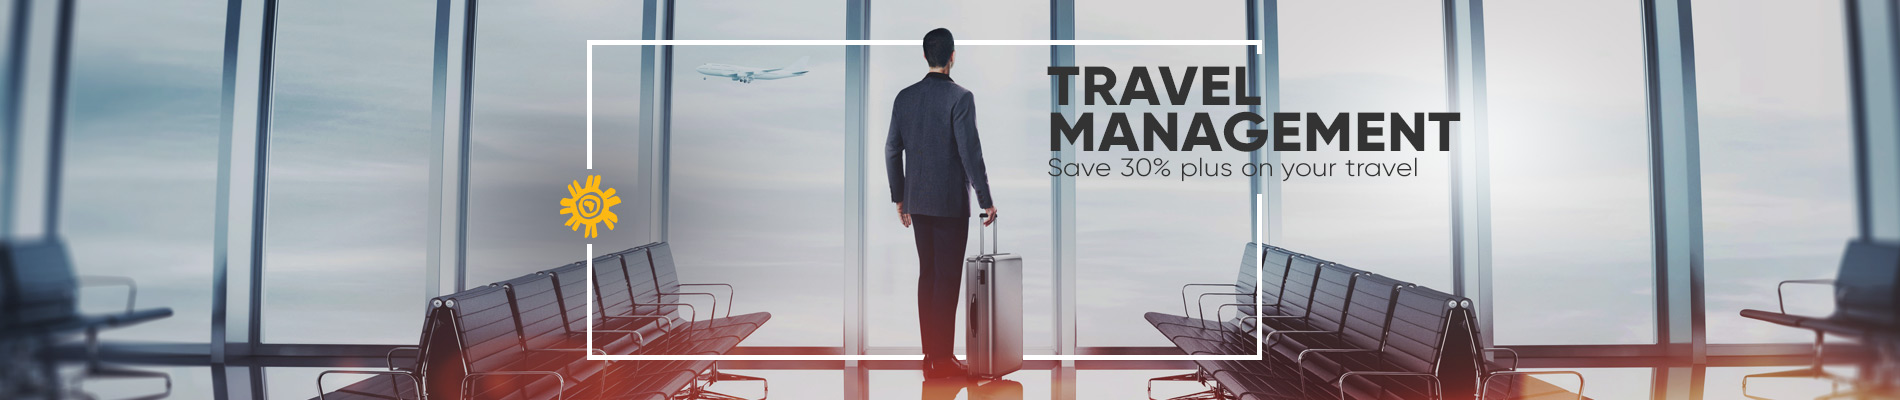 Save 30% plus on your travel with Tourvest Travel Services